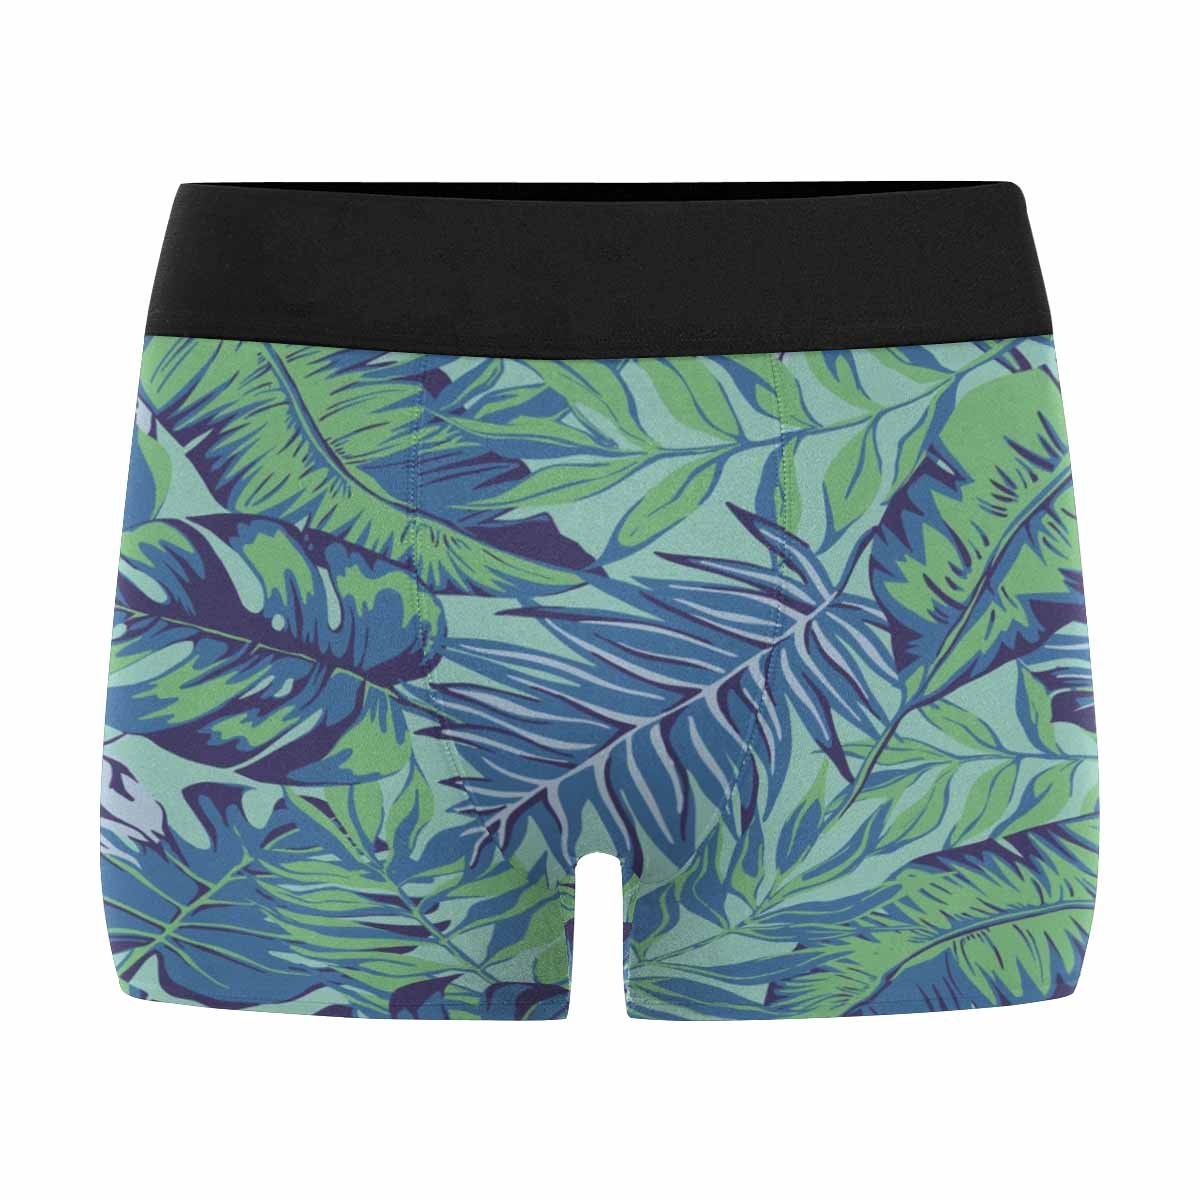 INTERESTPRINT Mens Boxer Briefs Underwear Graphical Artistic Hand Drawn Topical Pattern XS-3XL